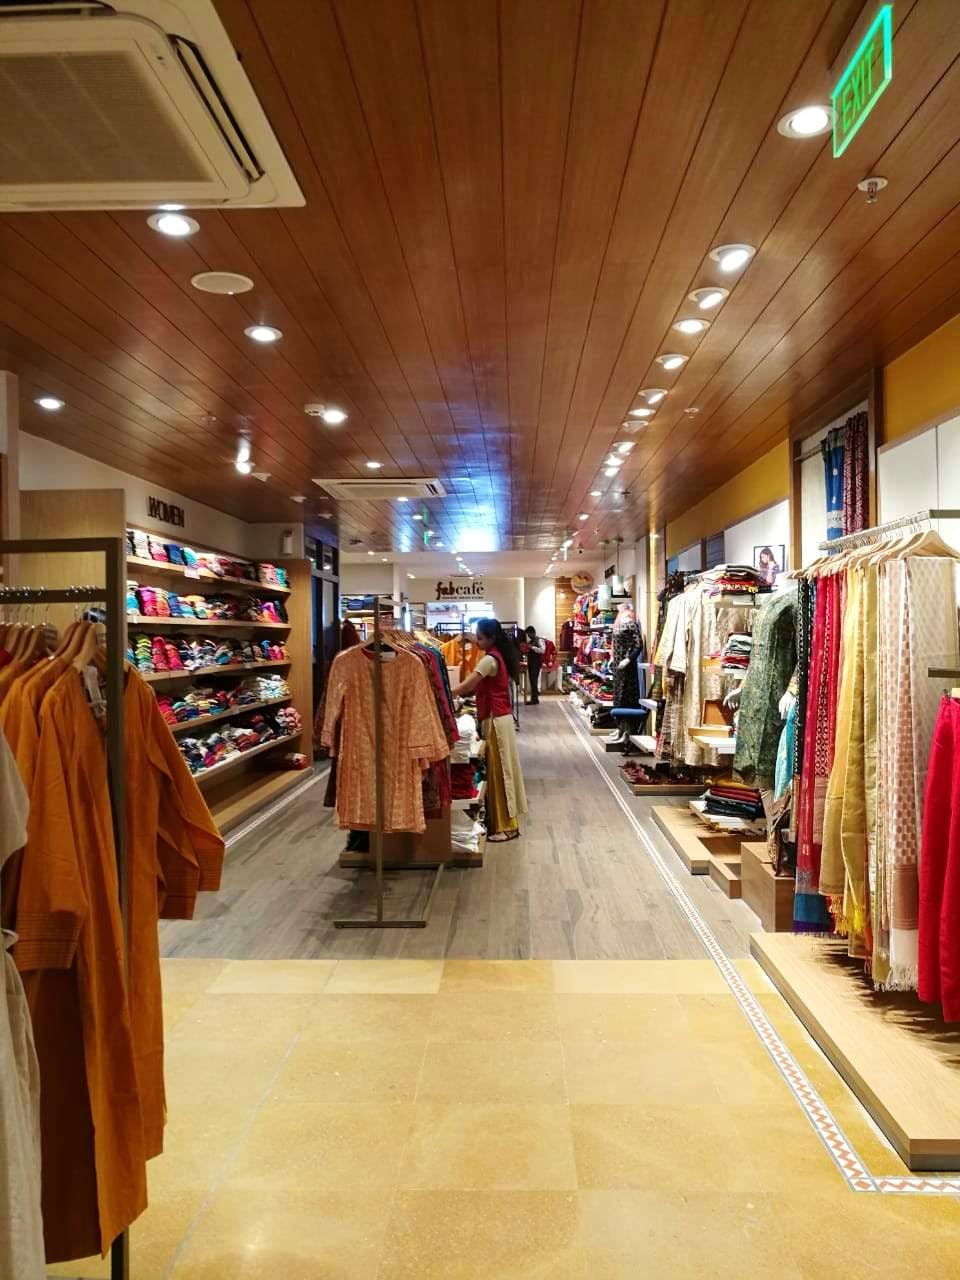 image - Fabindia Experience Center